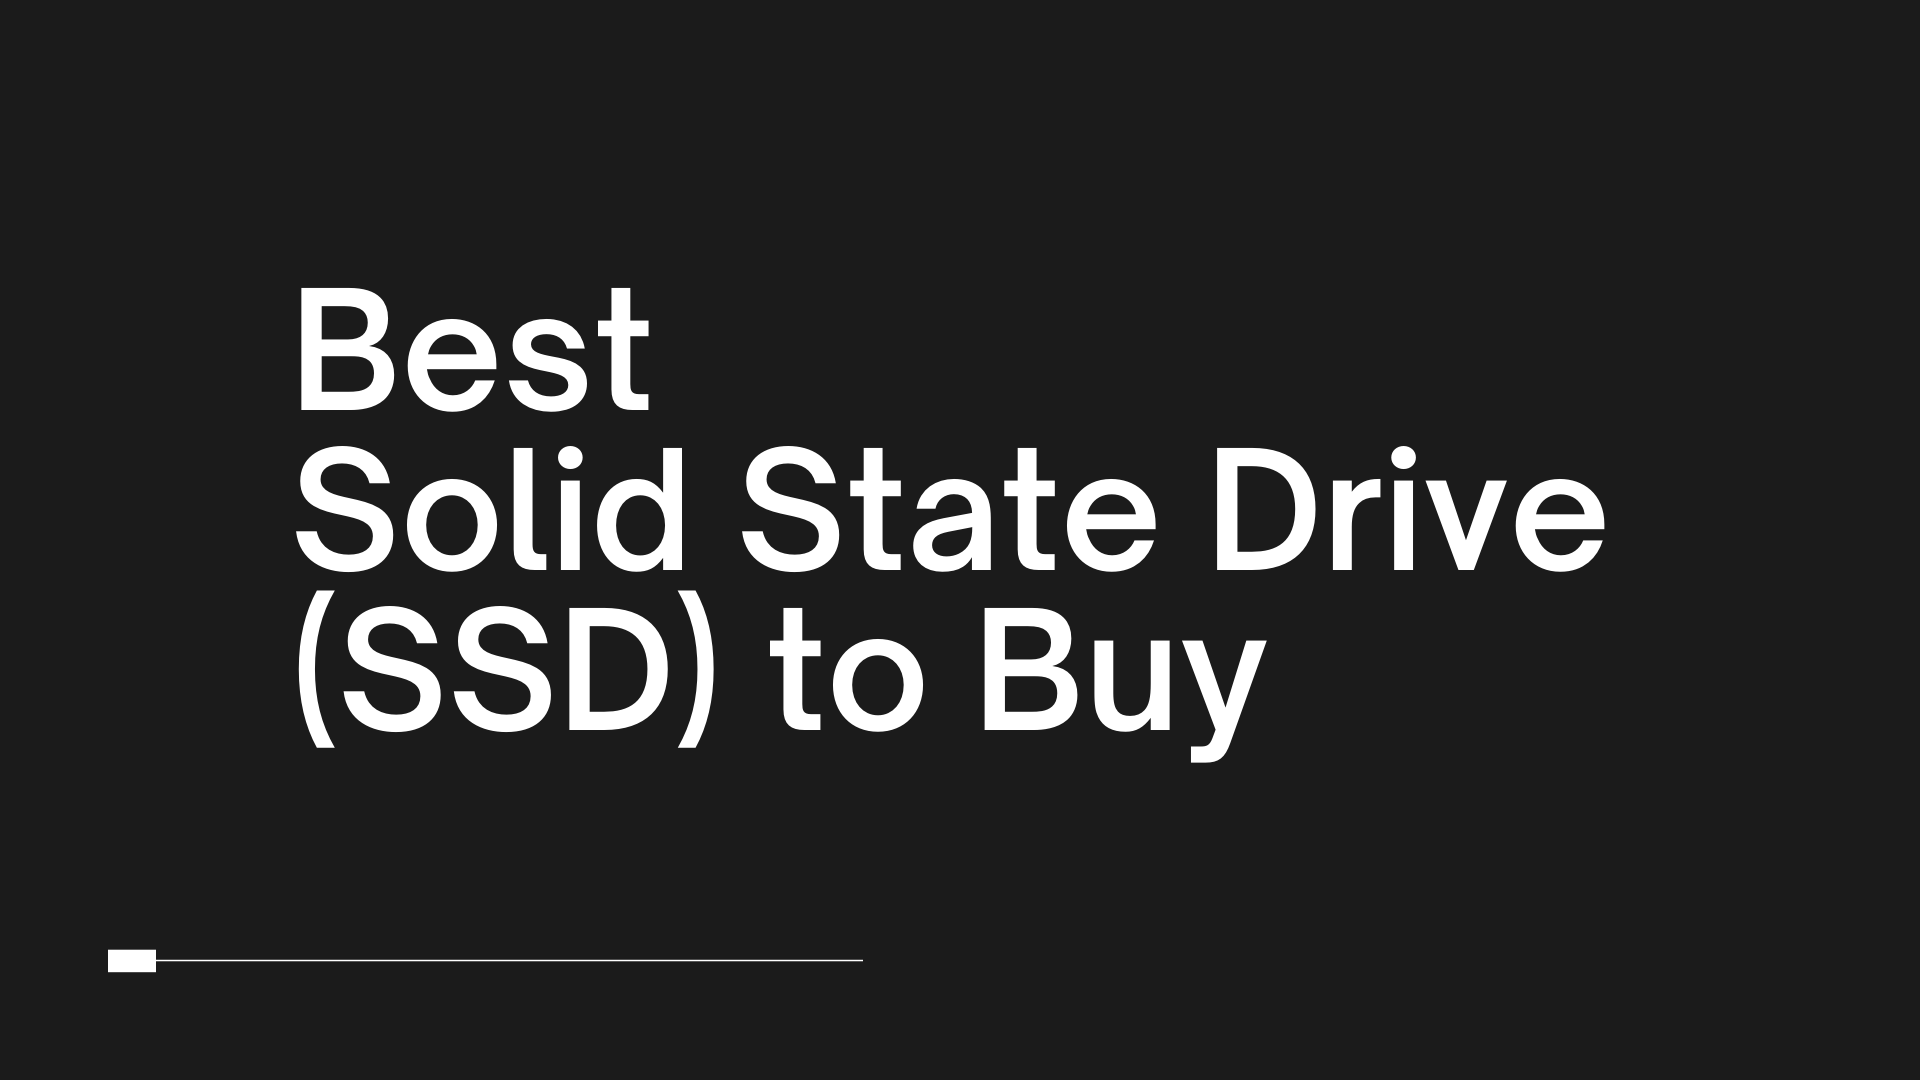 Best Solid State Drive